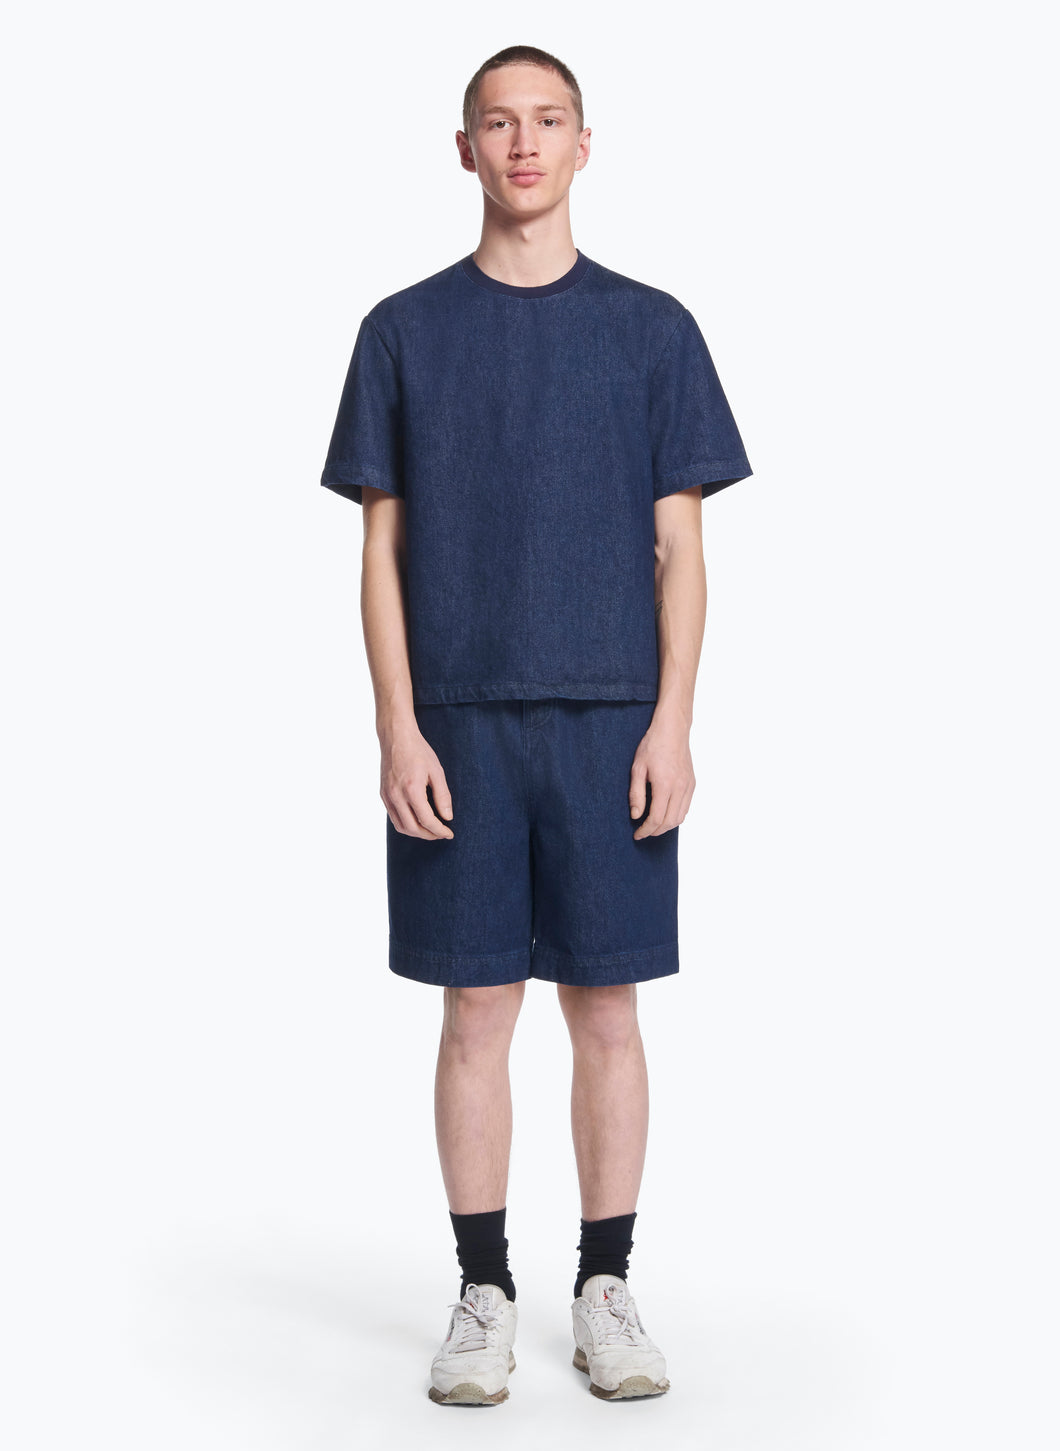 Short Sleeve T-Shirt with Edge-Ribbed Collar in Rinsed Denim